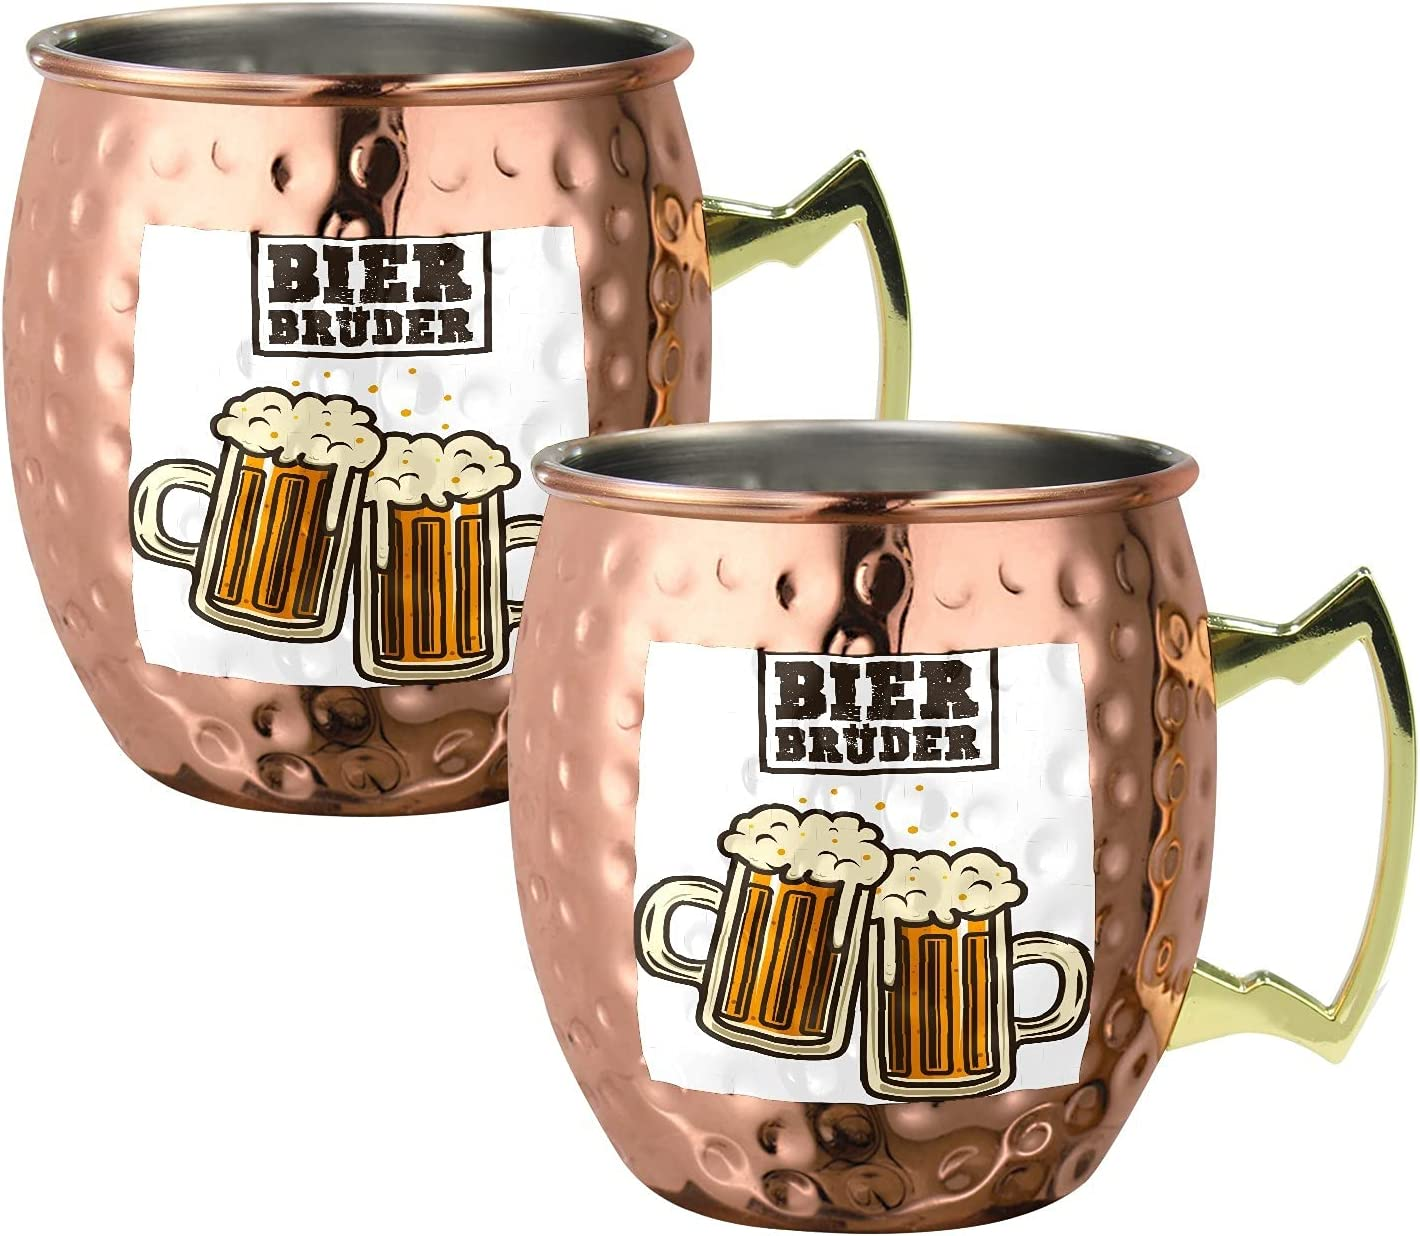 Beer Pattern Moscow Mule latest Copper Steel Mugs Cockta 5% OFF Stainless